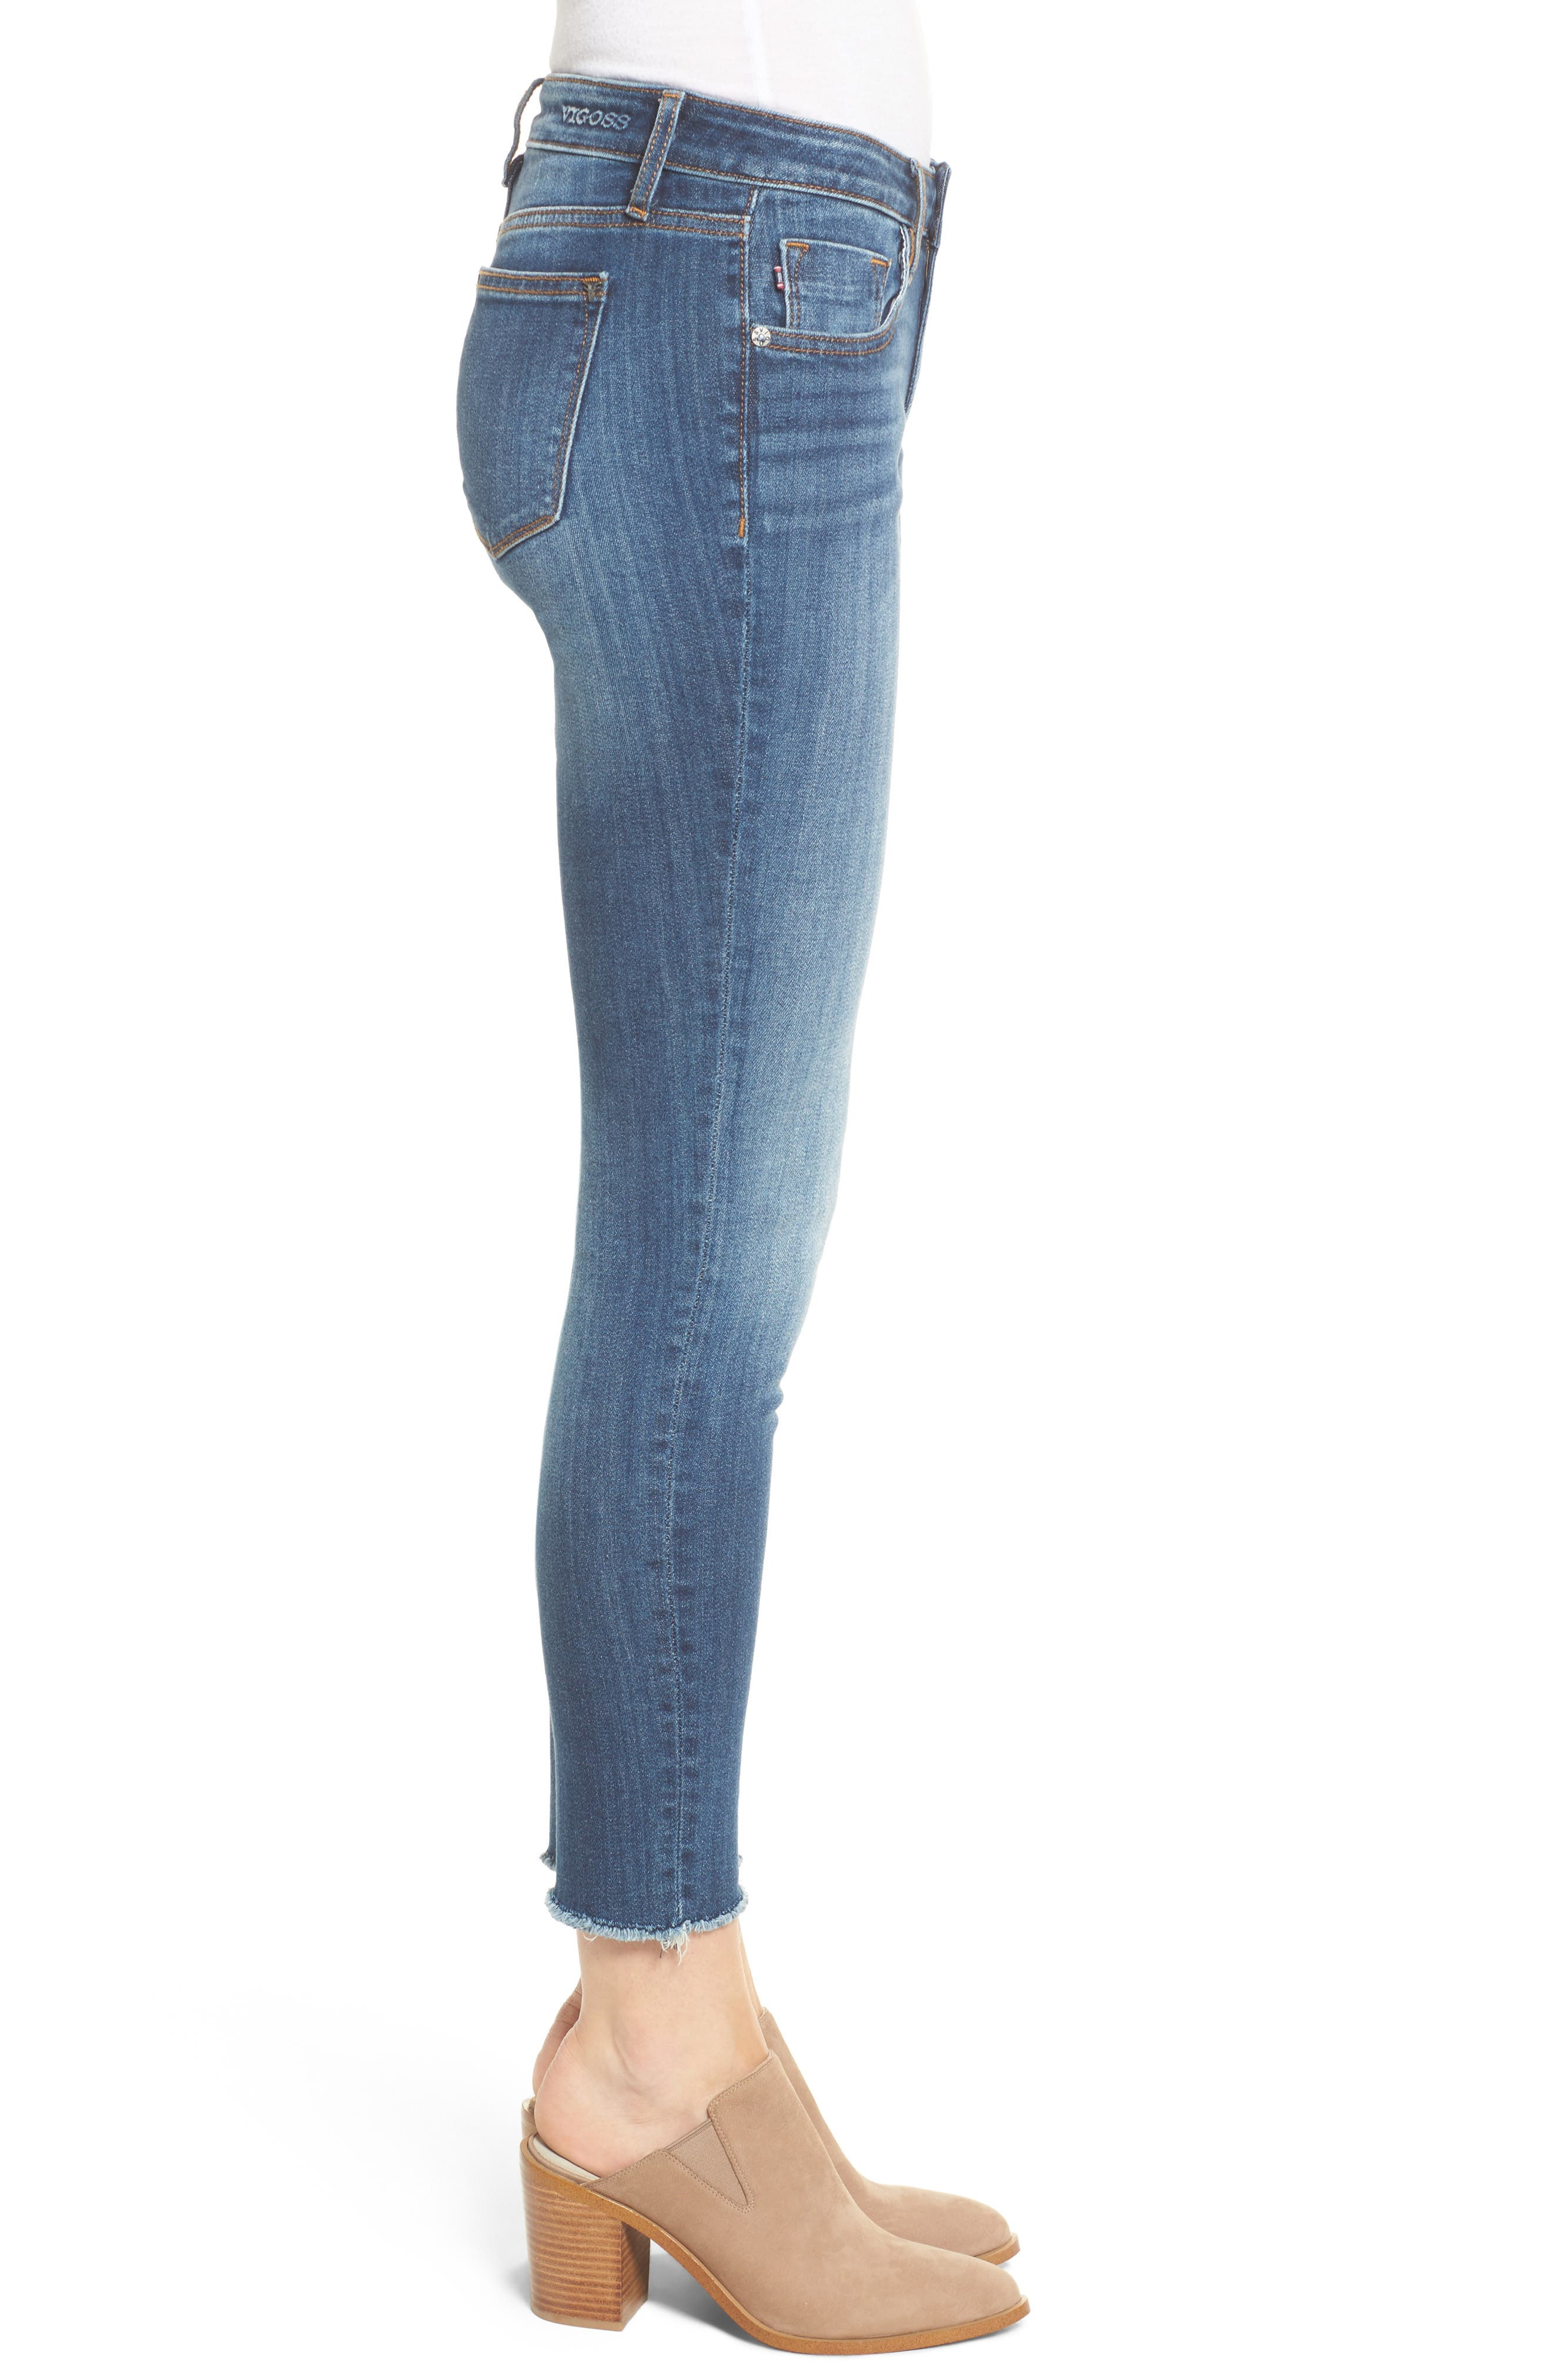 Jagger Mid-Rise Skinny Jeans,                             Alternate thumbnail 3, color,                             Med Wash